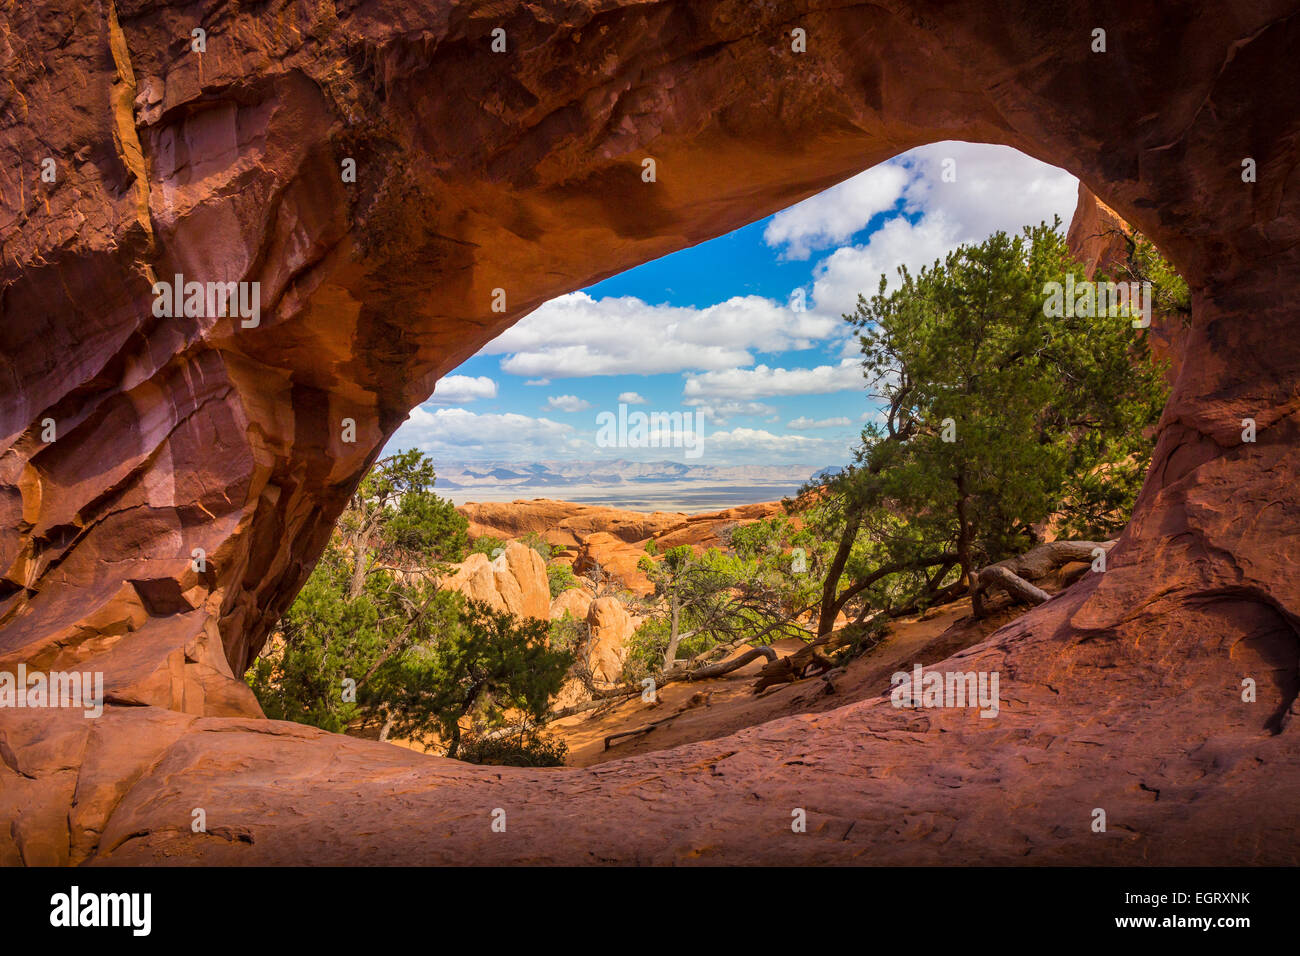 Double O Arch in Arches National Park, a US National Park in eastern Utah. - Stock Image